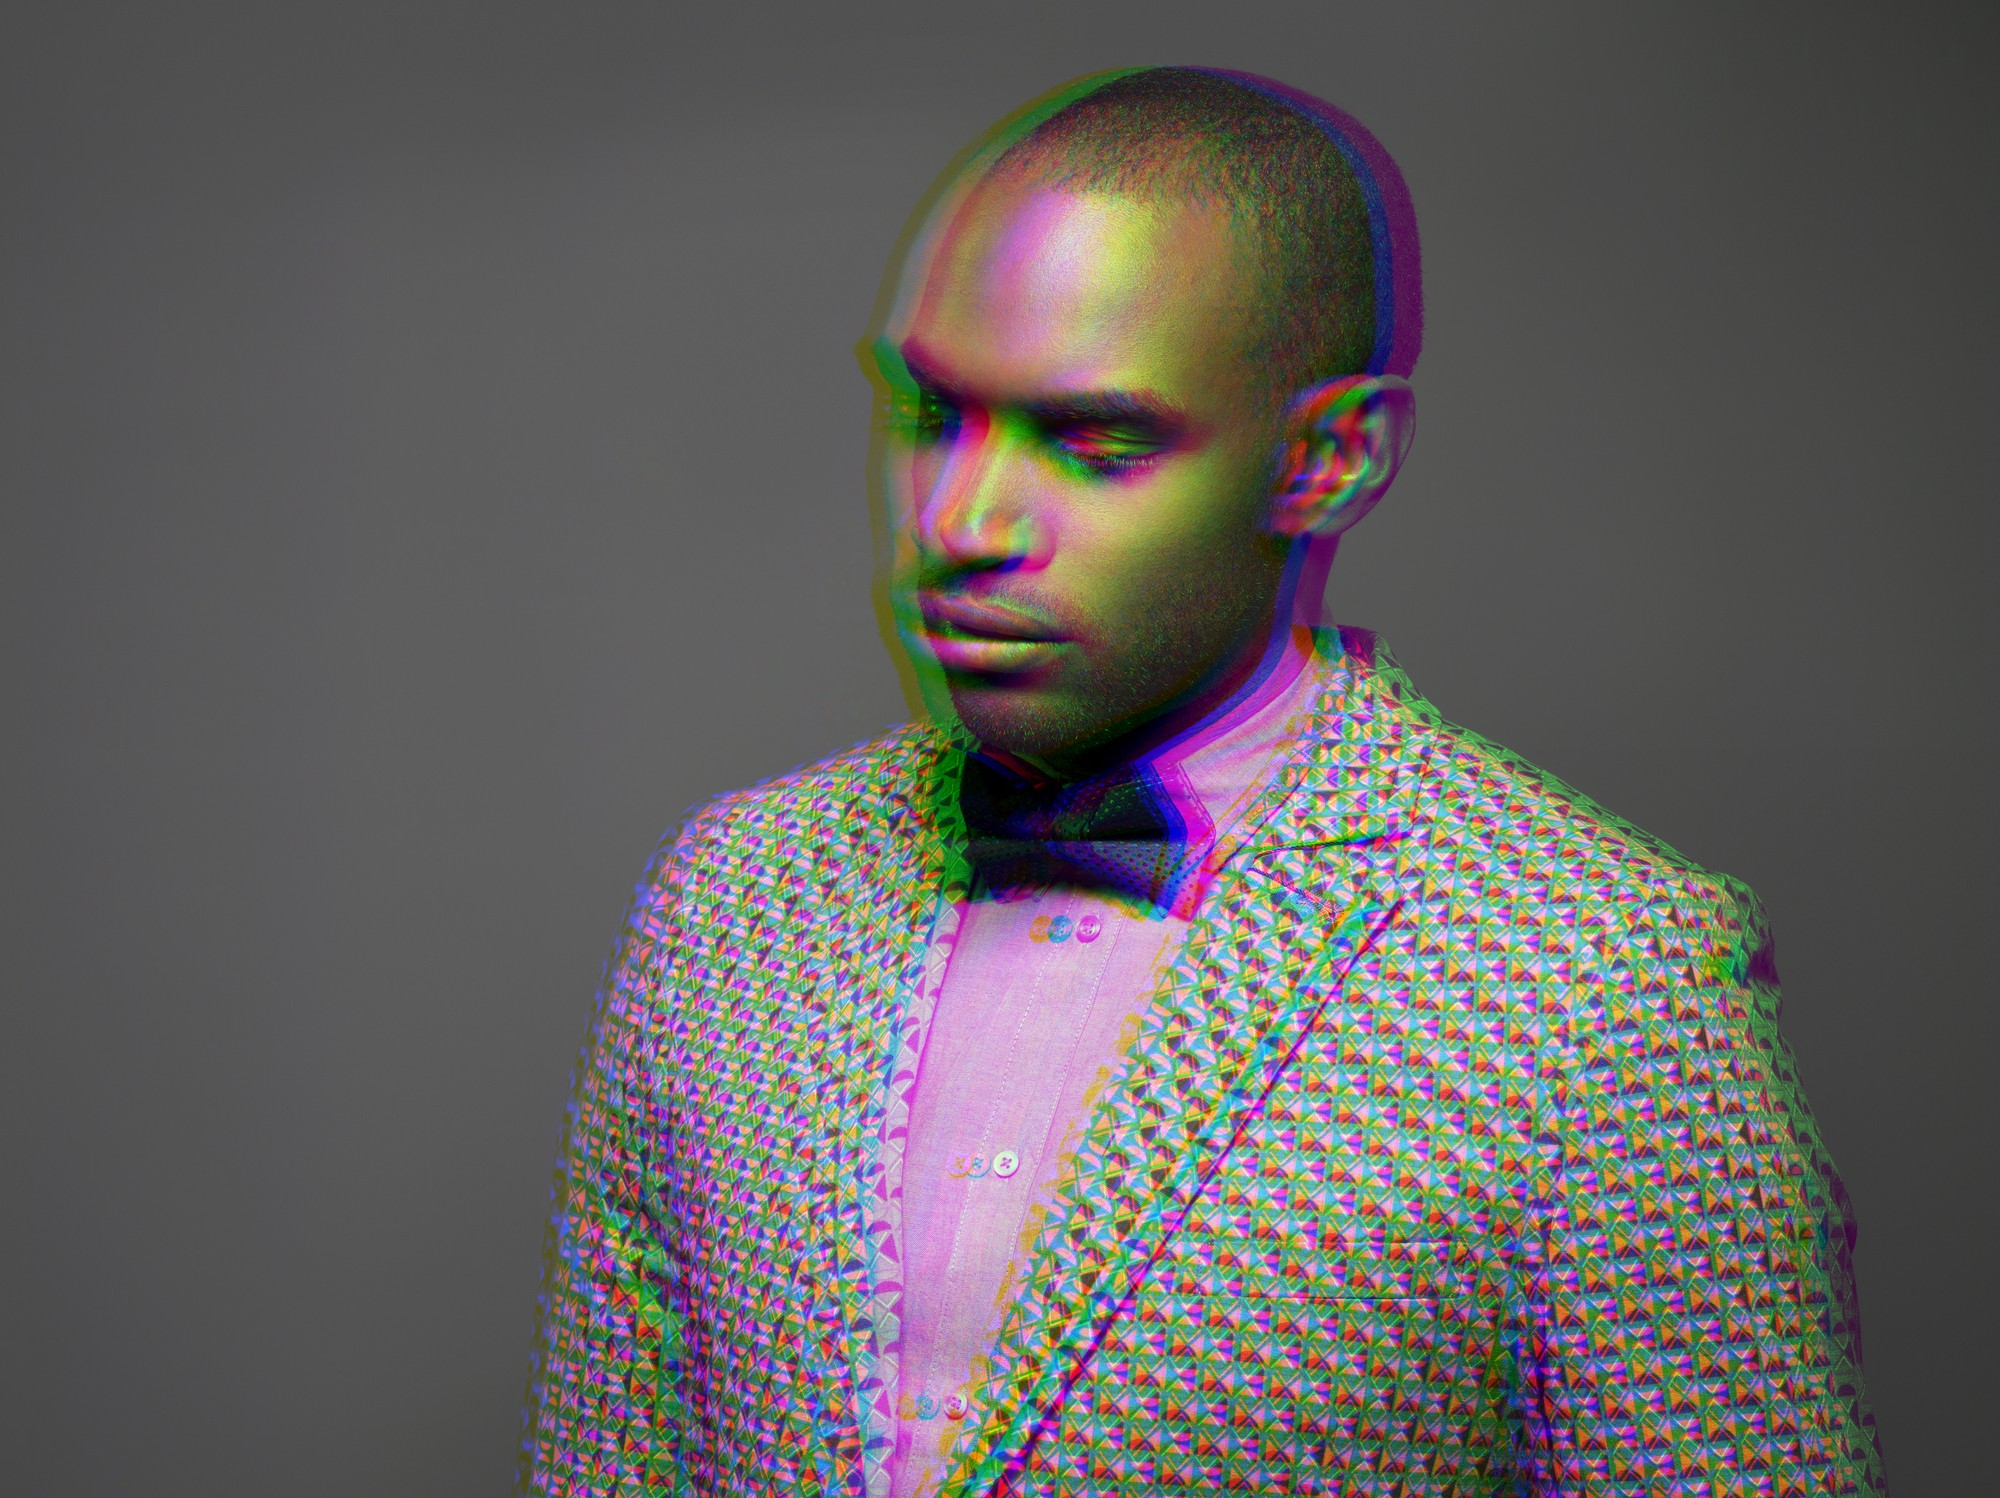 Multiple exposure shot of a Black man wearing a suit looking down.